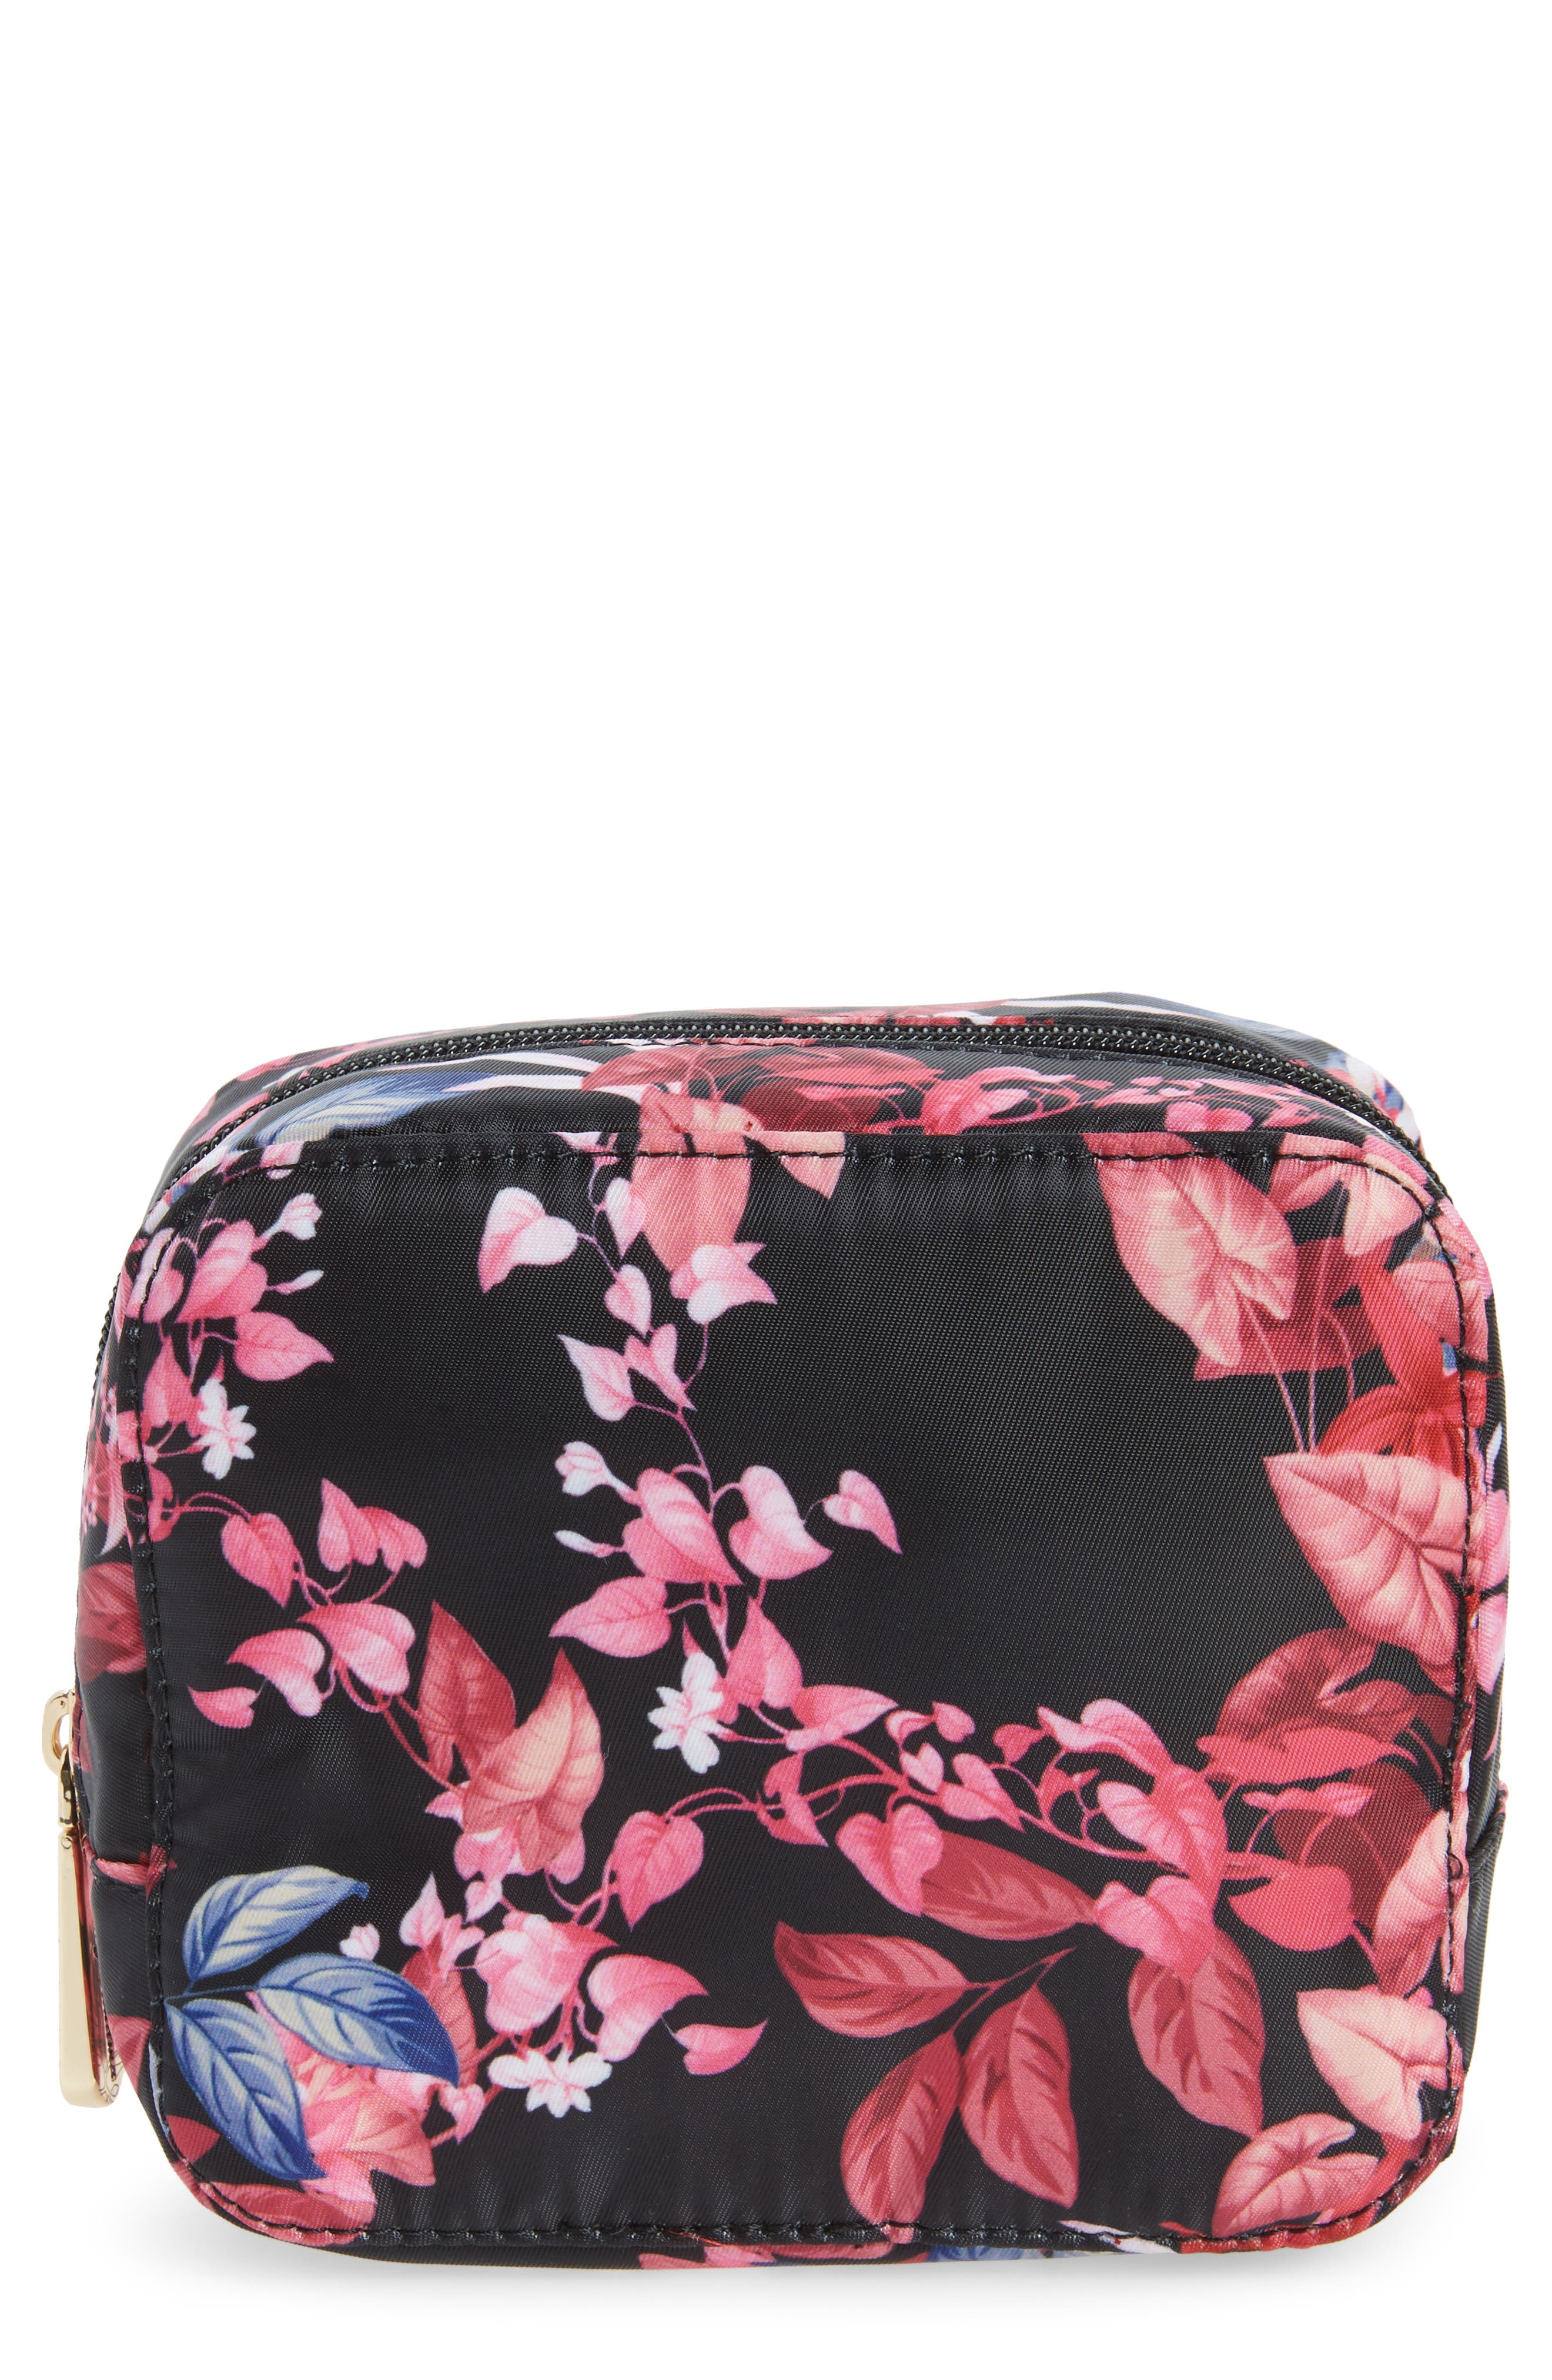 Up in the Air Cosmetics Case & Eye Mask,                         Main,                         color, Fall Garden Part